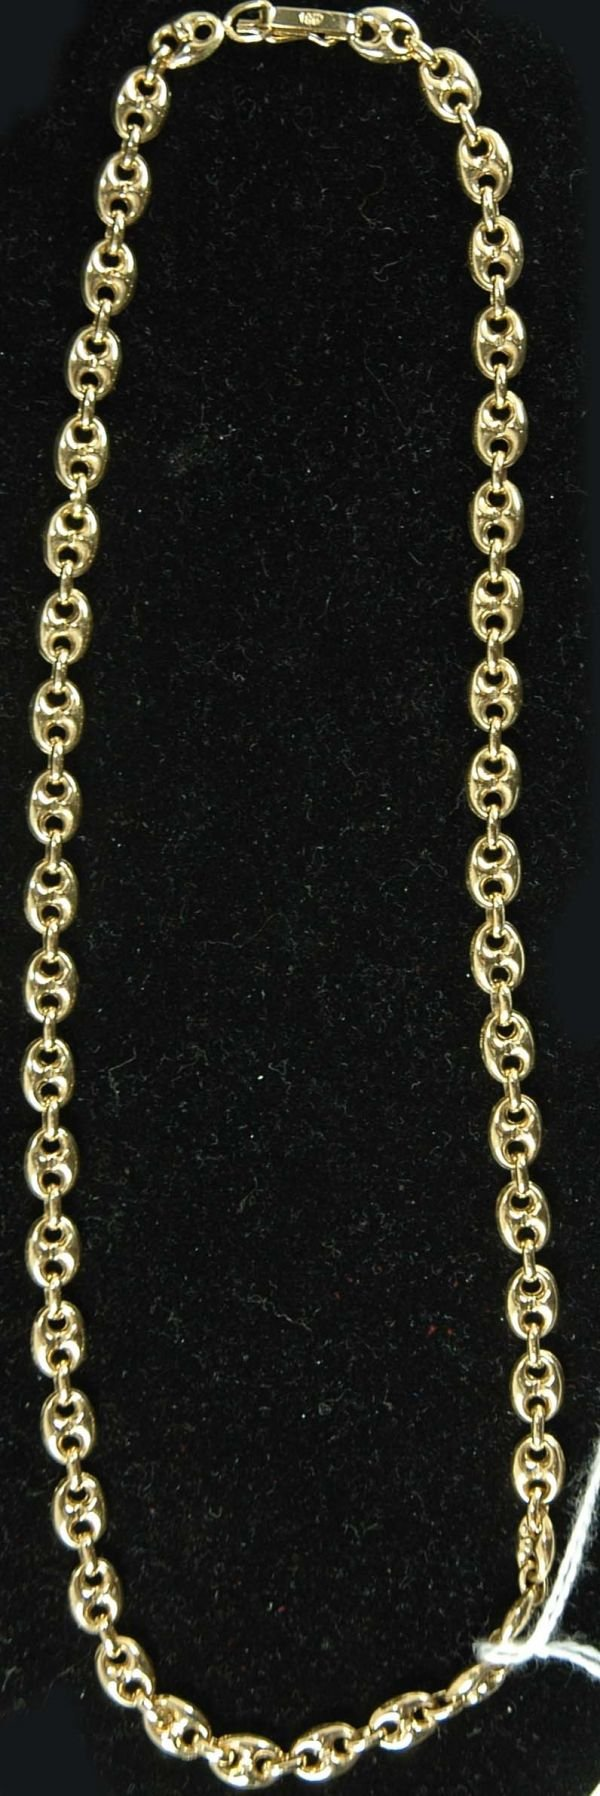 523: 18KT YELLOW GOLD GUCCI LINK CHAIN